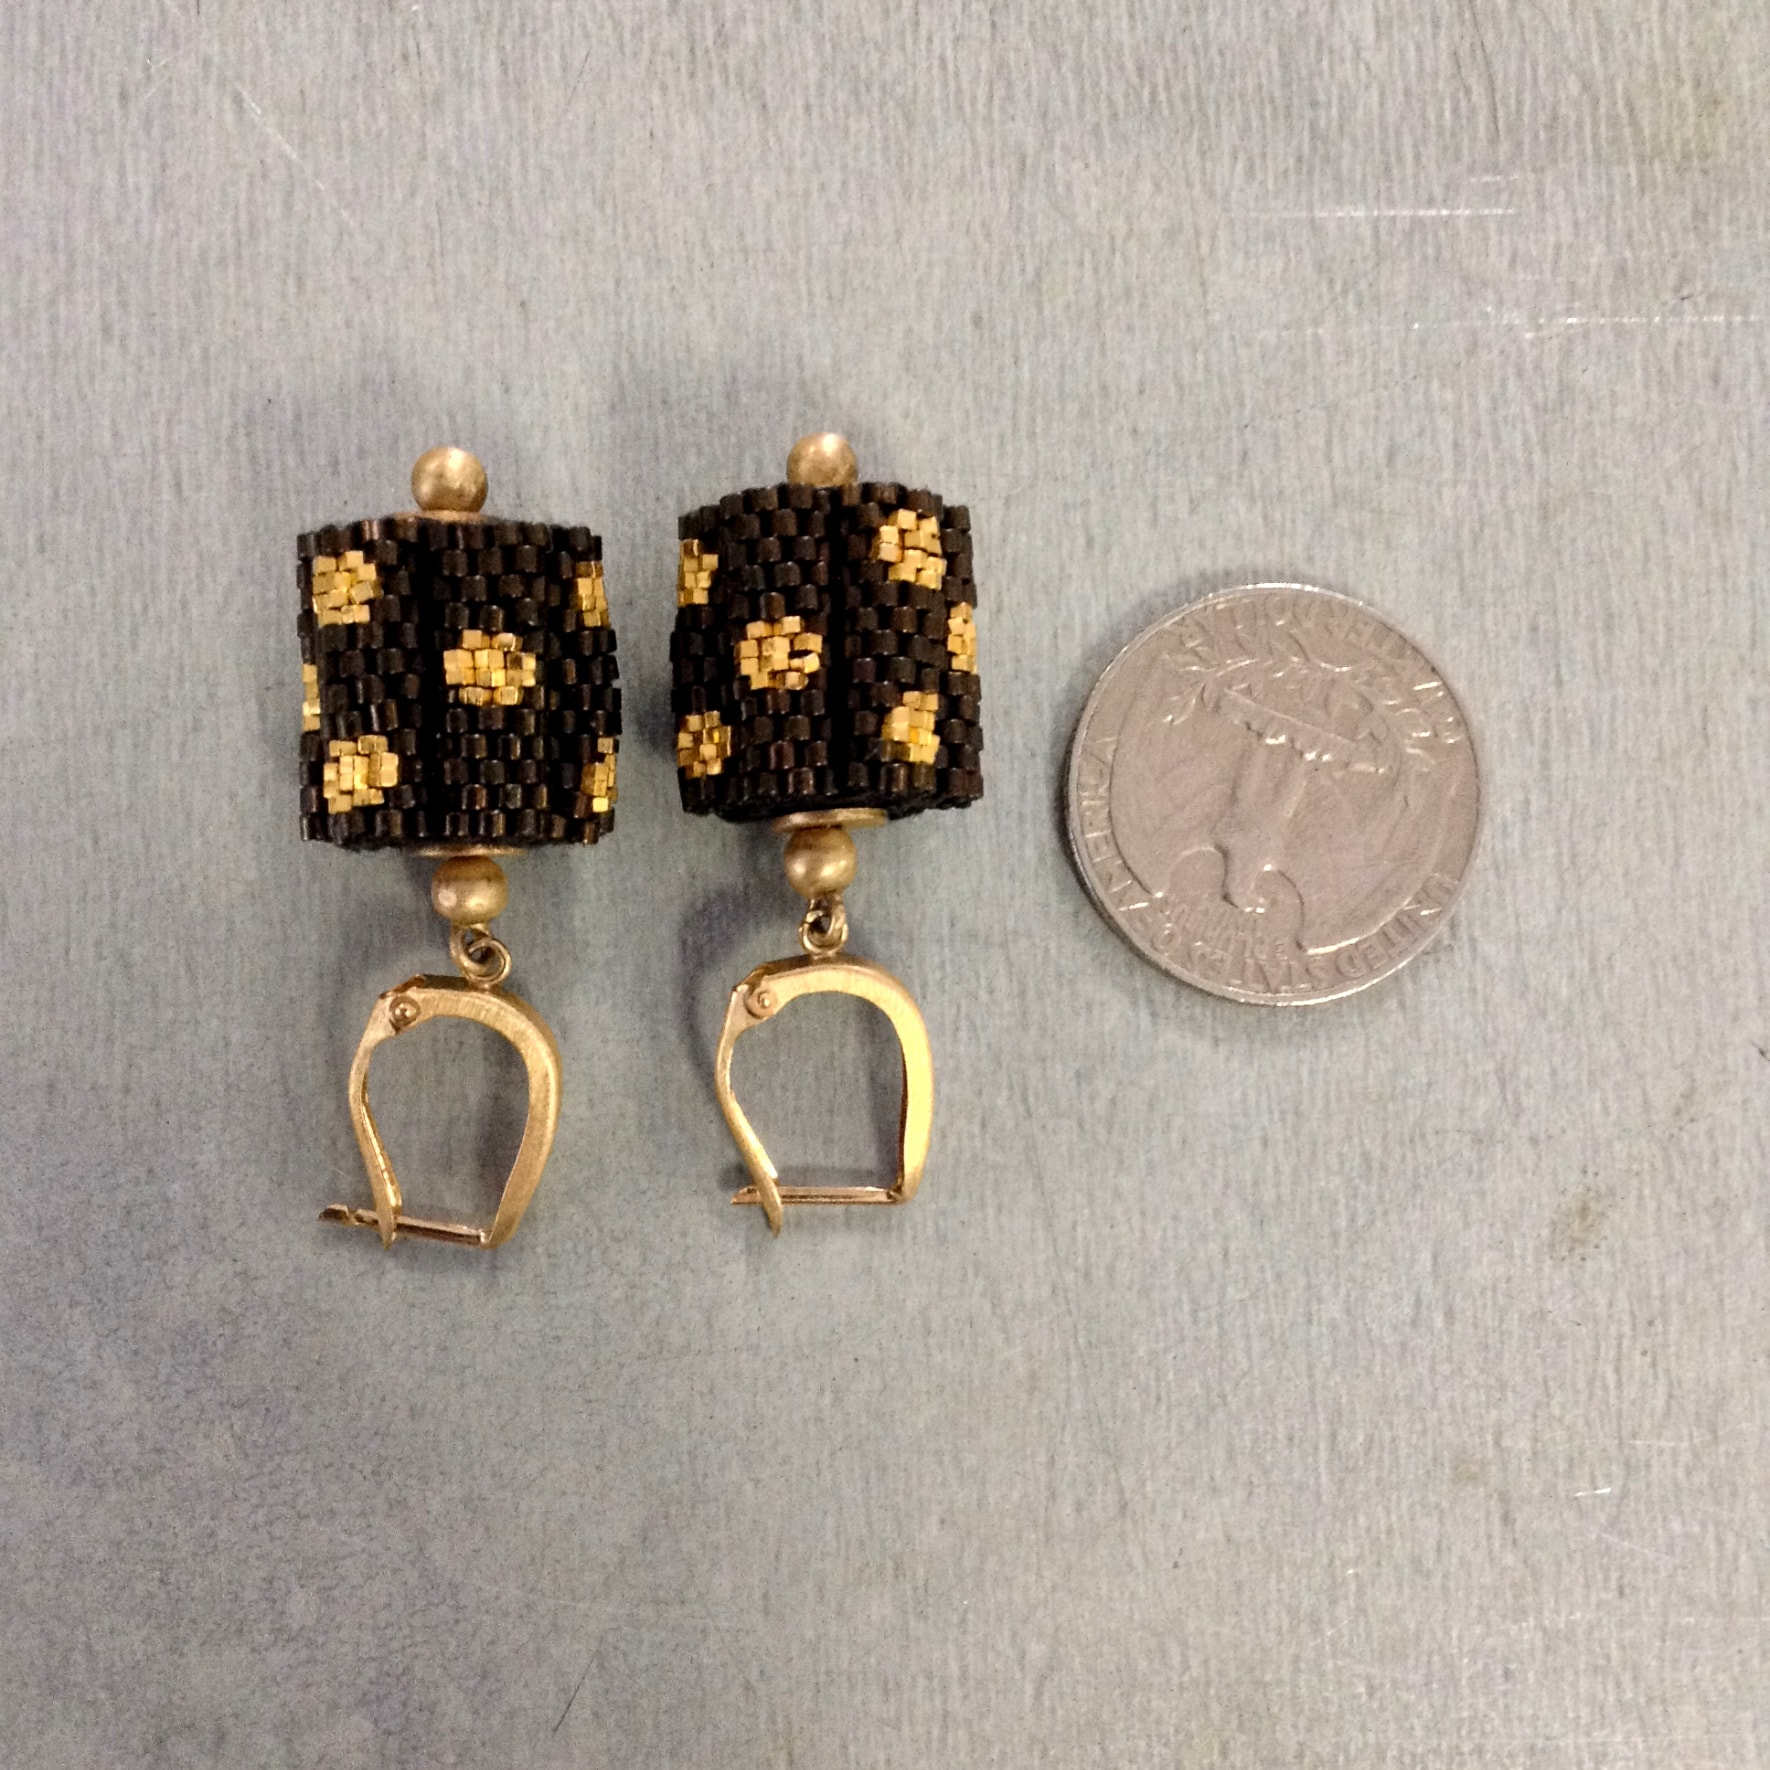 Mesh Handmade Earrings with Gold and Chocolate Brown From India ...